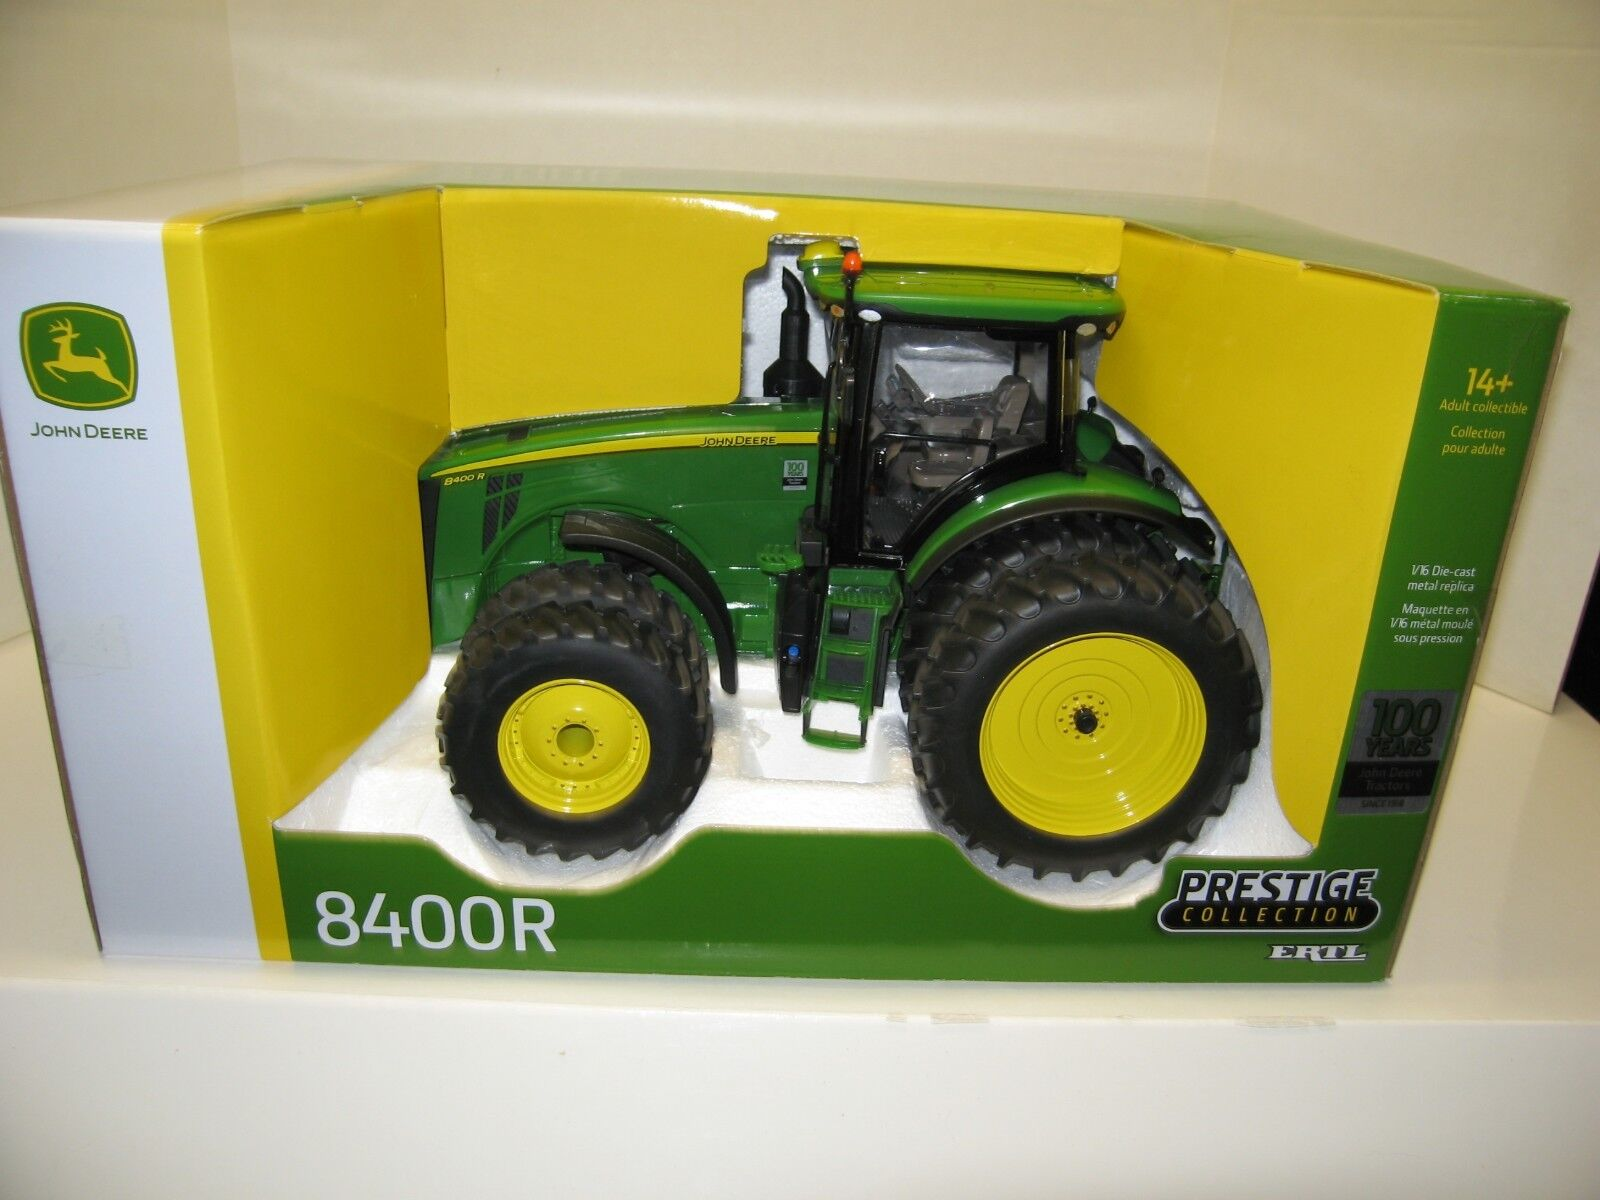 1 16 John Deere 8400R mfwd DUALS PRESTIGE COLLECTION (100YOT) new in box free ship